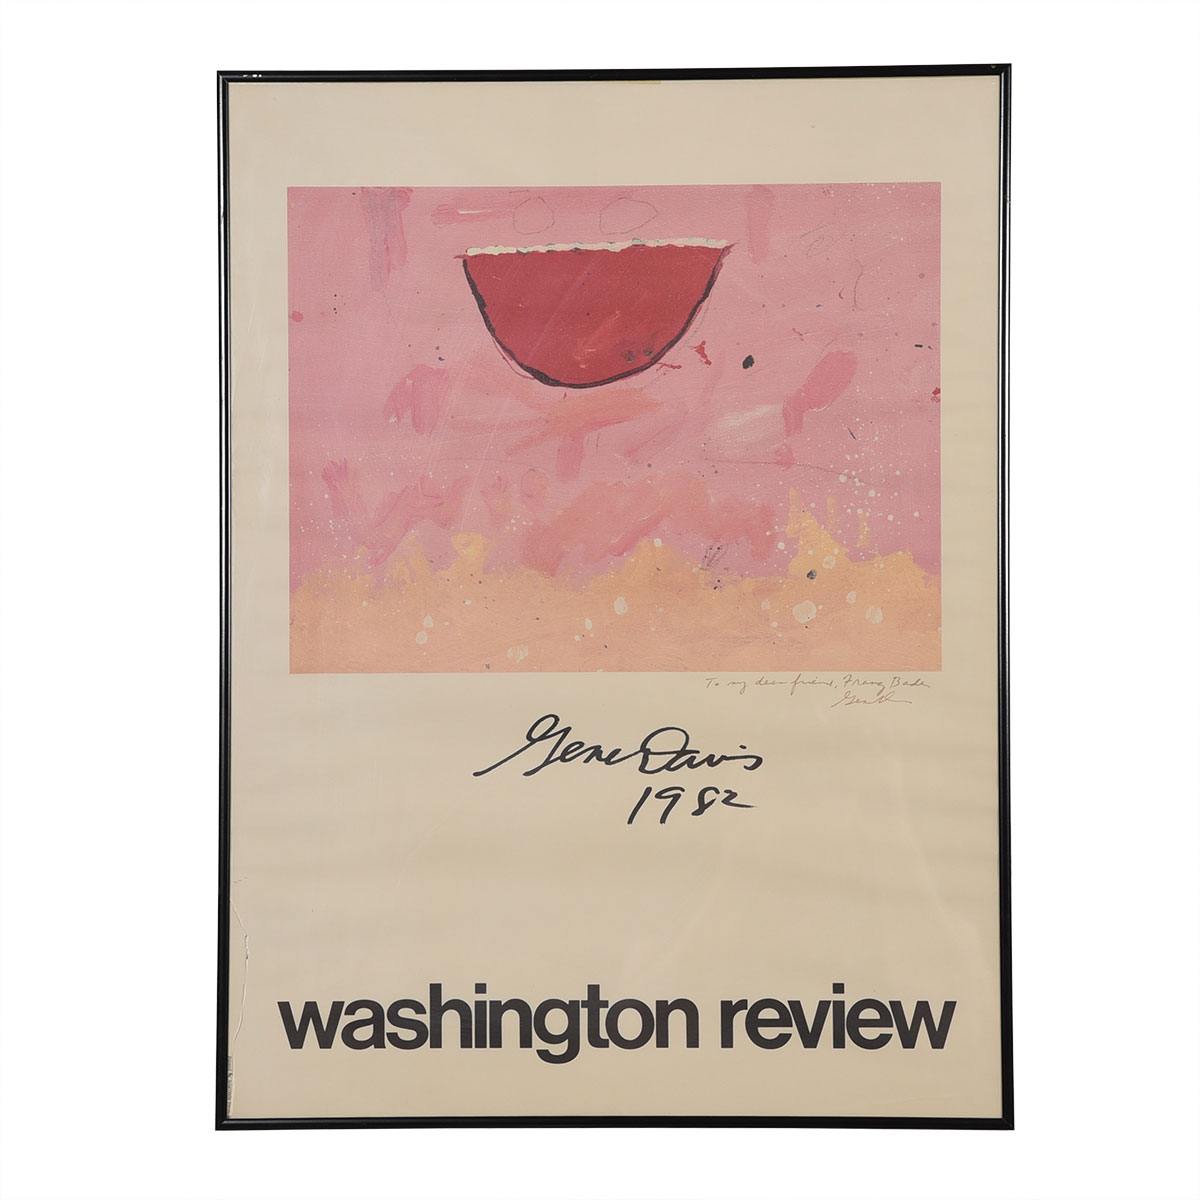 Vintage Gene Davis 'Washington Review' Poster (1982)